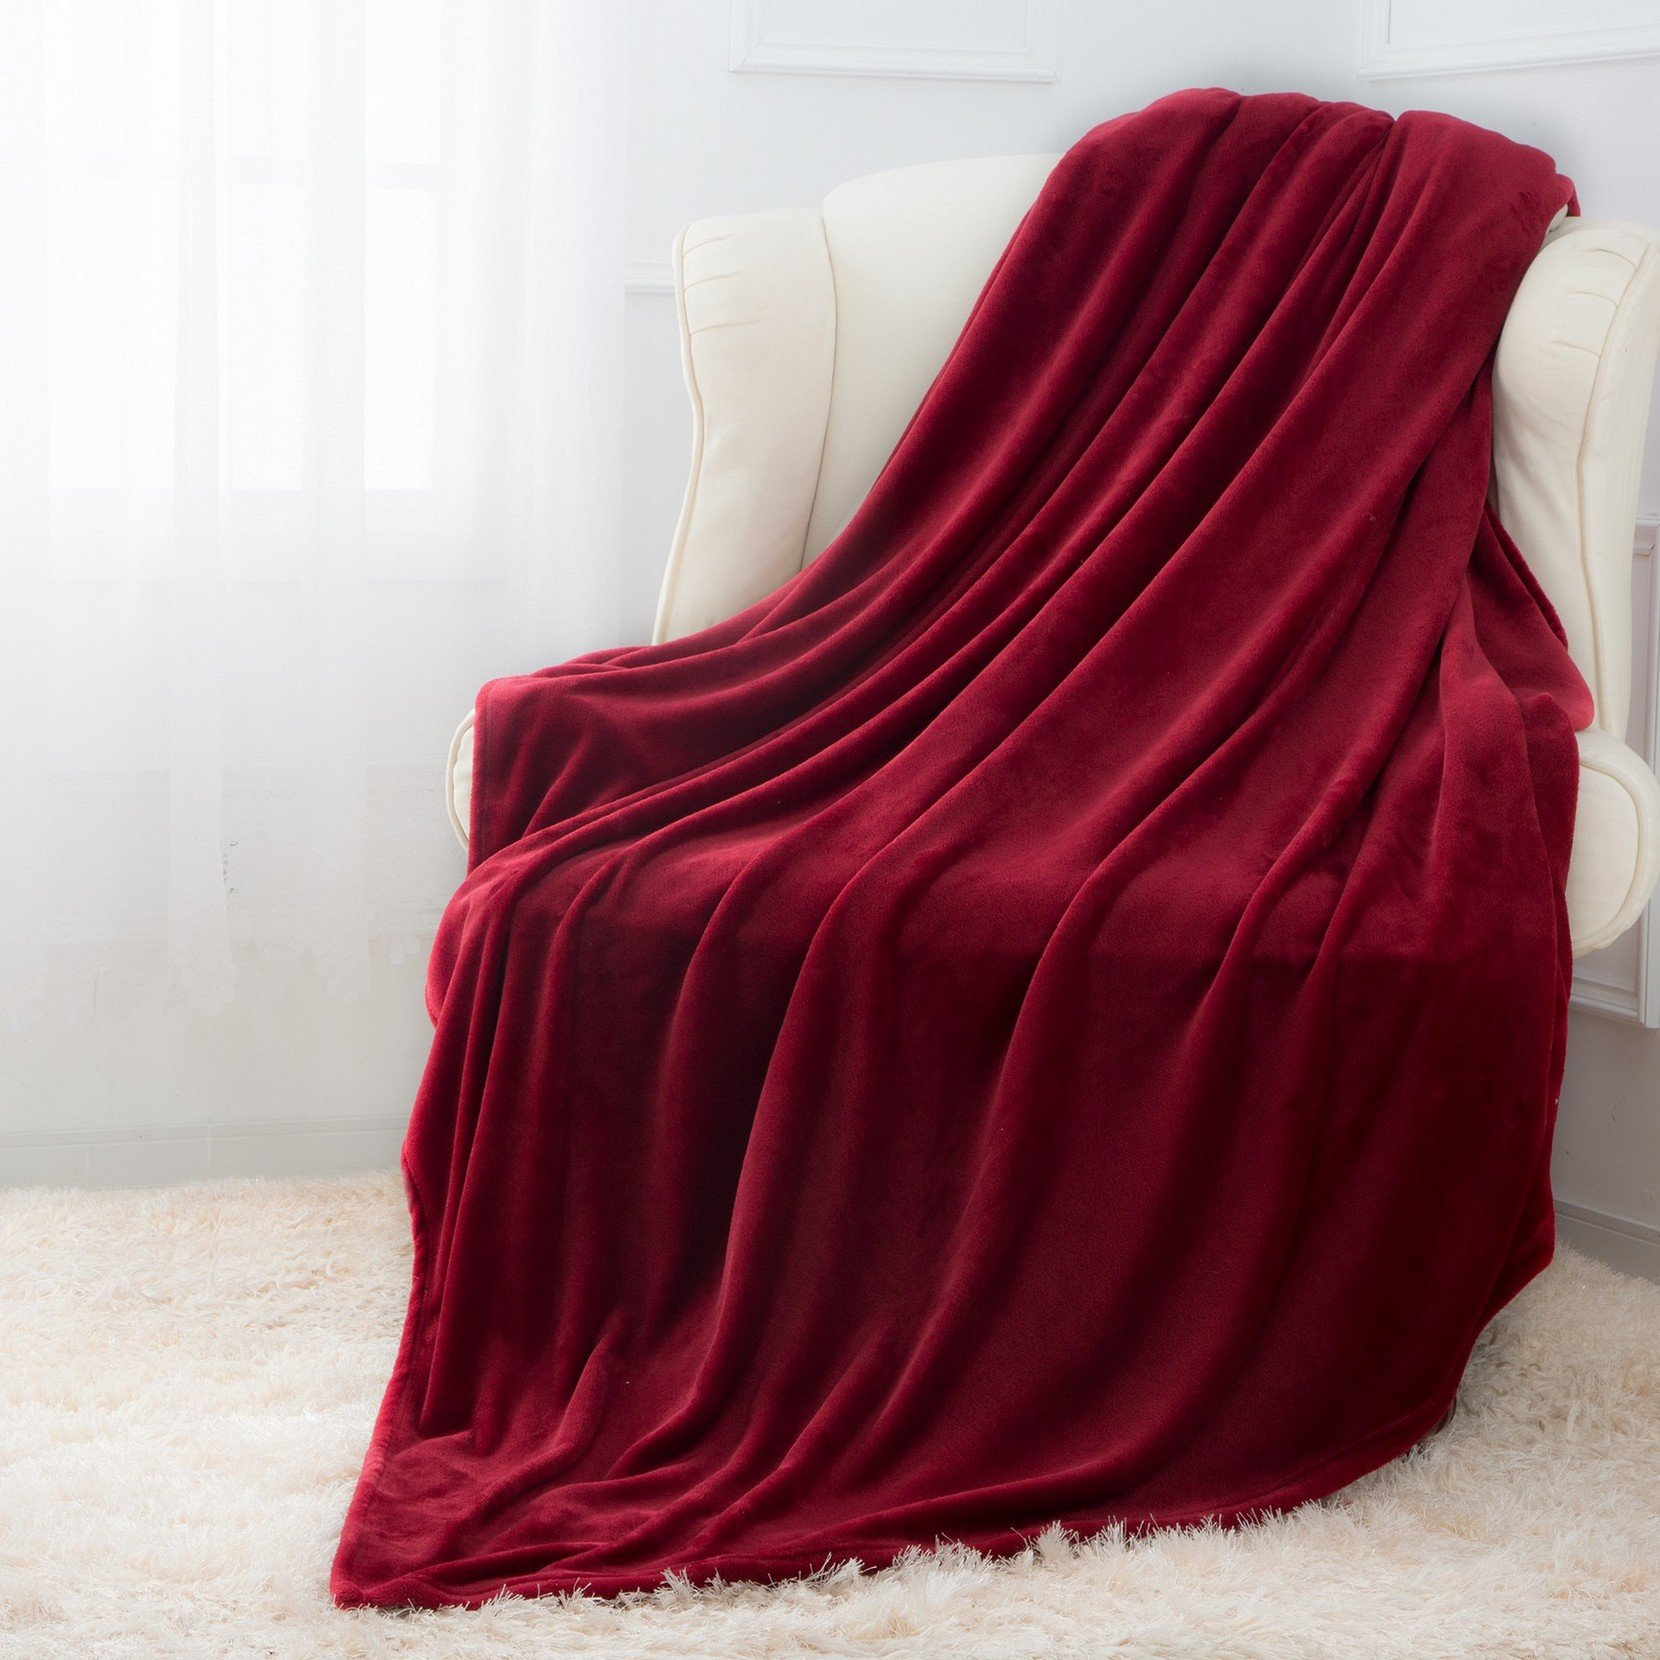 Moonen Flannel Throw Blanket Luxurious Throw Size Lightweight Plush Microfiber Fleece Comfy All Season Super Soft Cozy Blanket Bed Couch Gift Blankets (Burgundy, 50x60 inches)